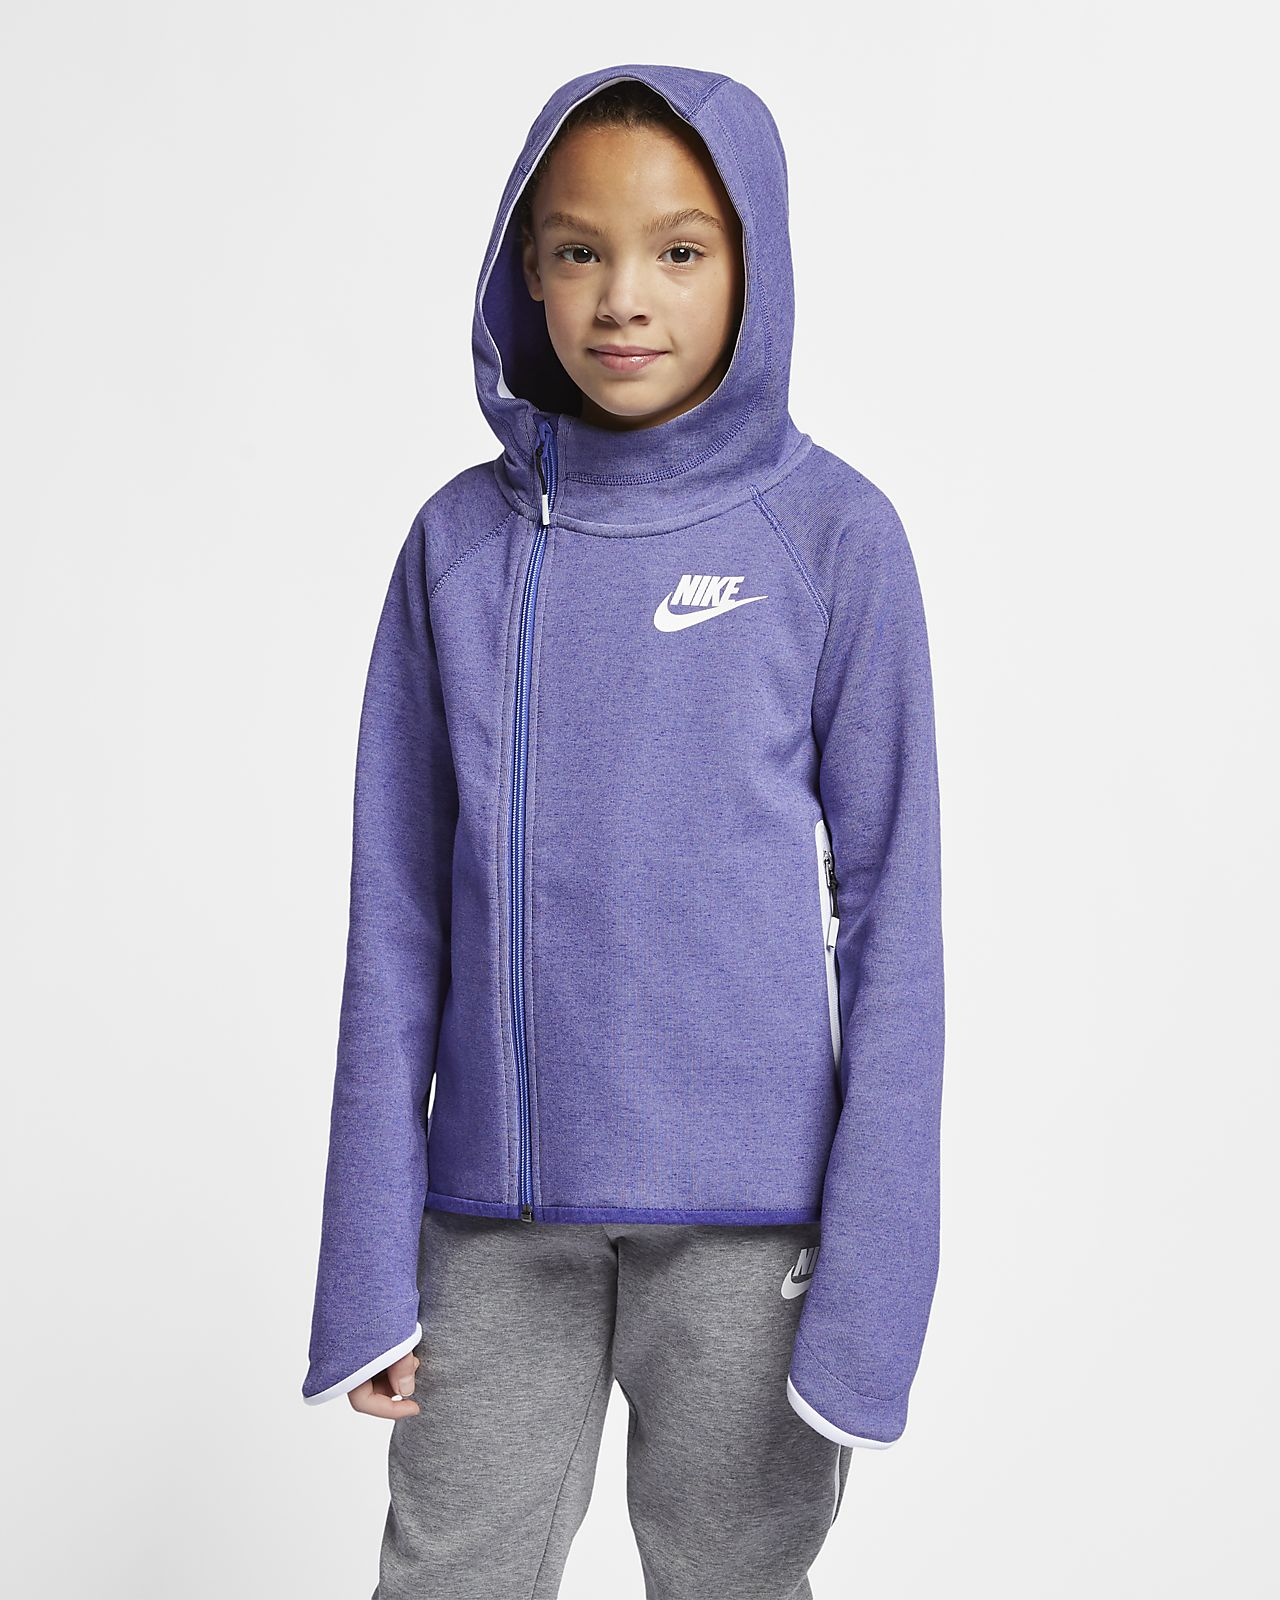 b8e1258be724 Nike Sportswear Tech Fleece Older Kids  (Girls ) Full-Zip Hoodie ...